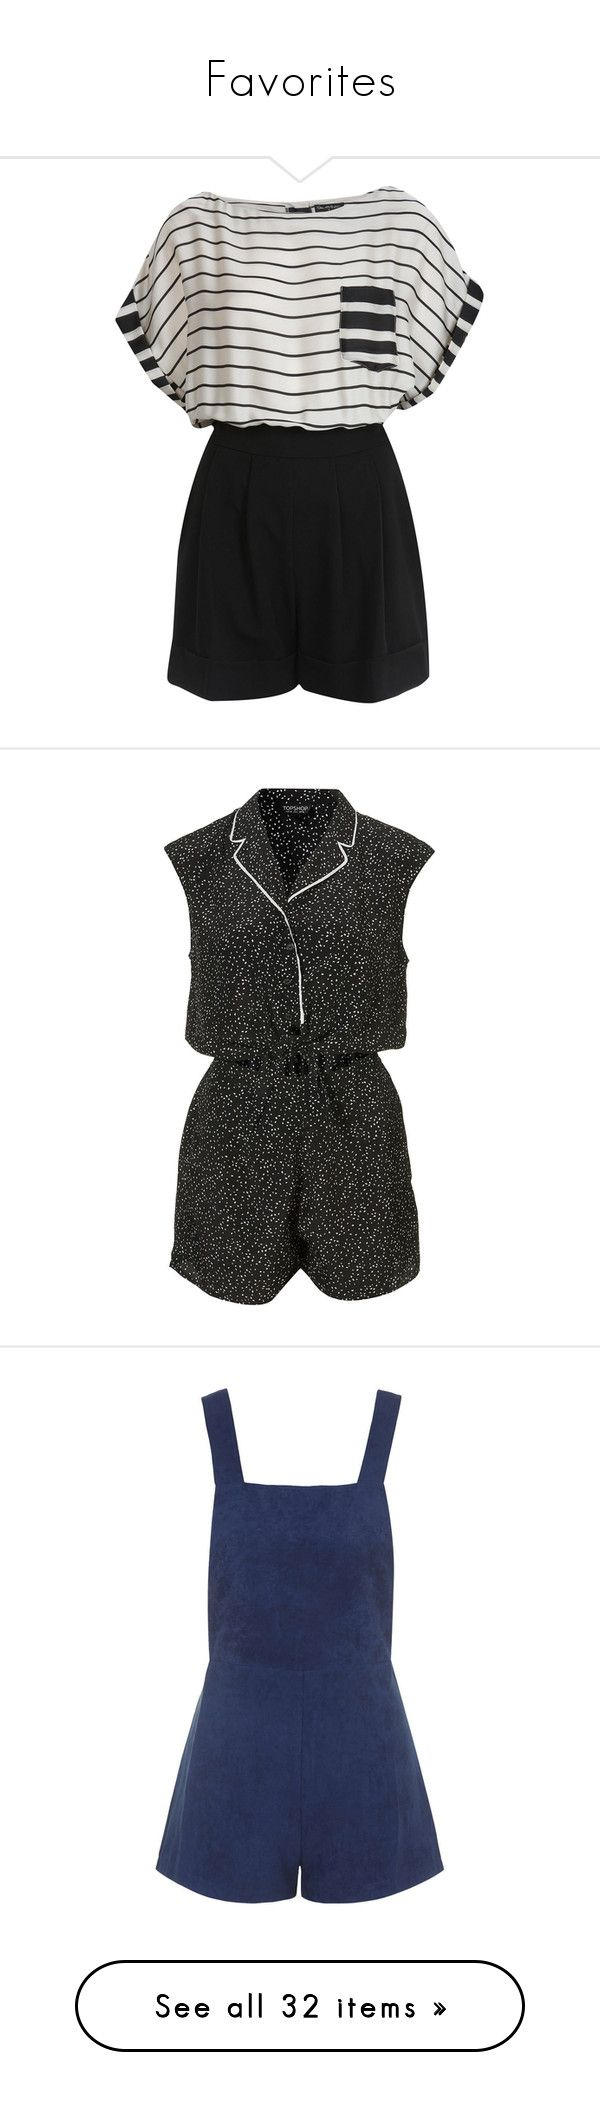 """""""Favorites"""" by bruna-nieto ❤ liked on Polyvore featuring jumpsuits, rompers, dresses, playsuits, jumpers, women, jump suit, striped romper, miss selfridge jumpsuit and miss selfridge"""